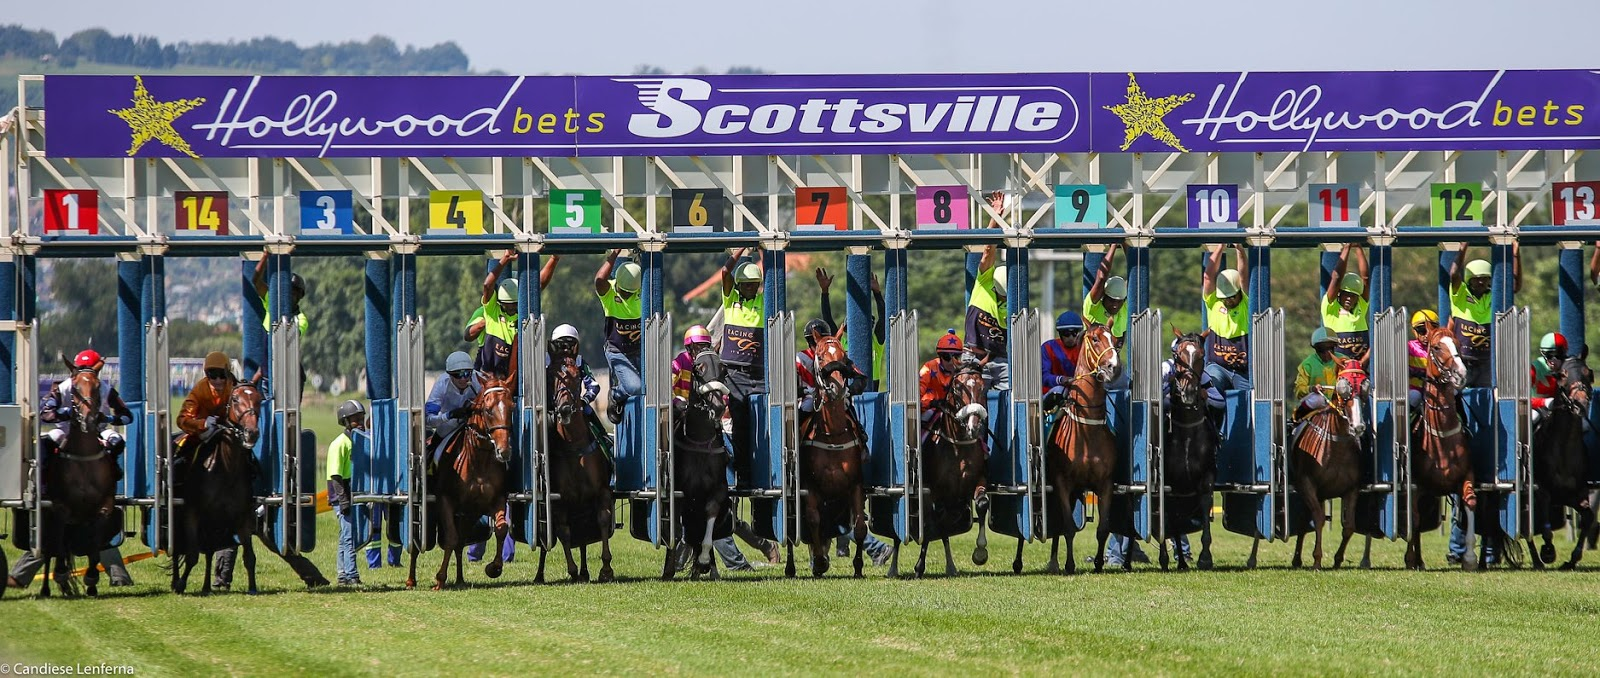 Hollywoodbets Scottsville Racecourse - starting gates